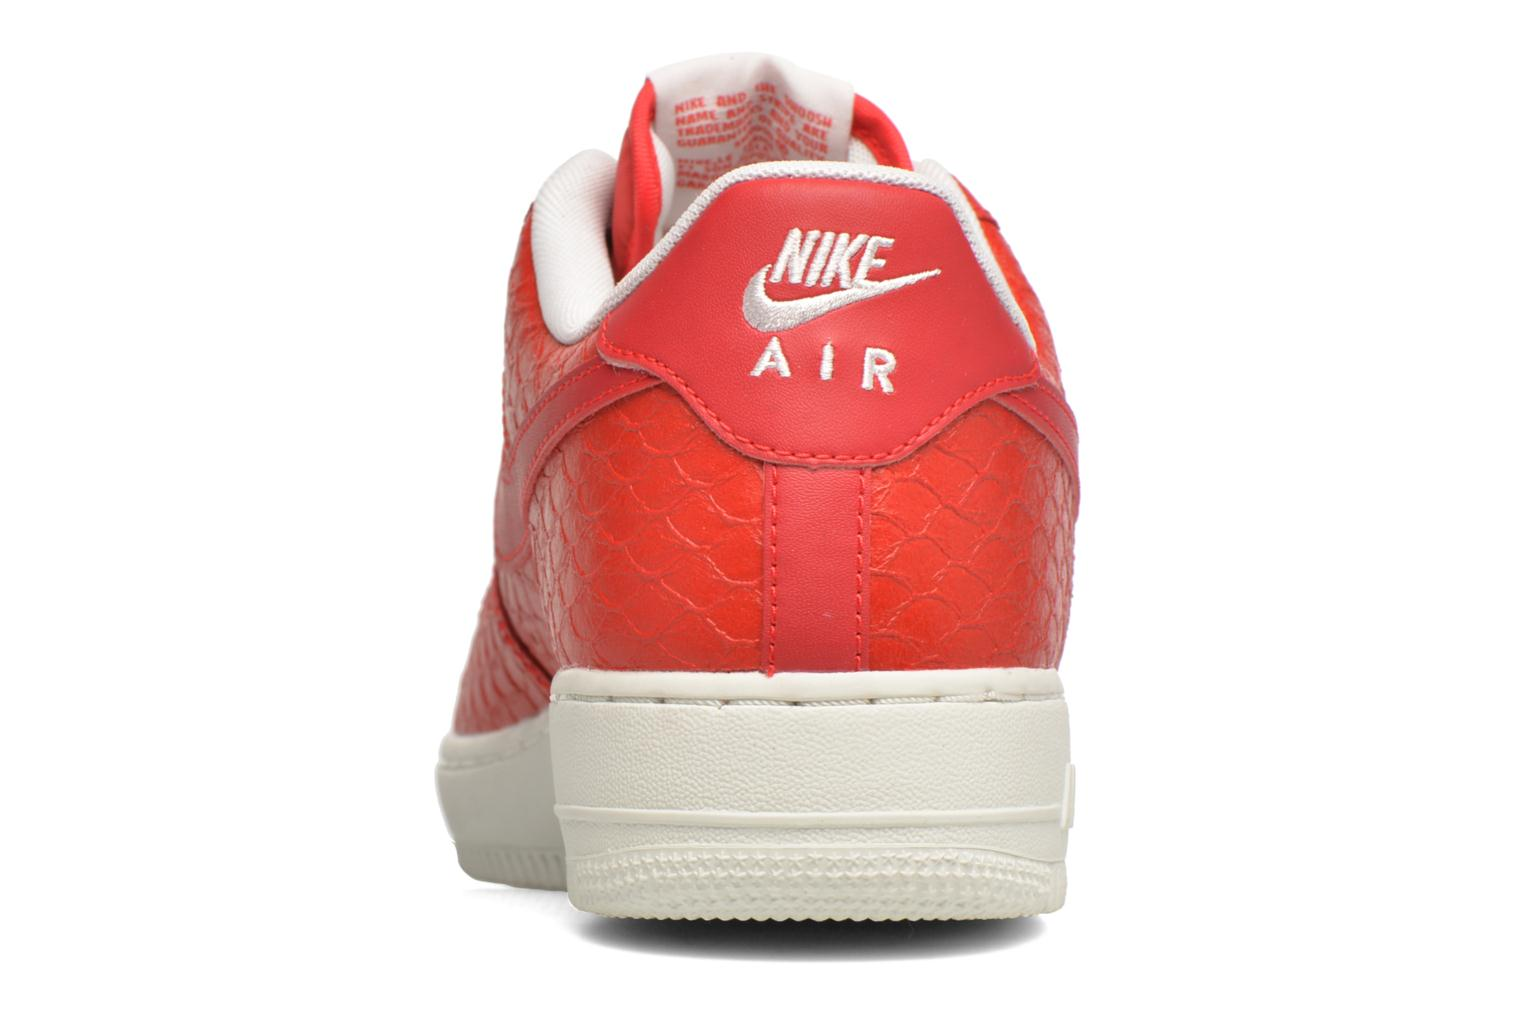 Air Force 1 '07 Lv8 Action Red/Action Red-Smmt Wht